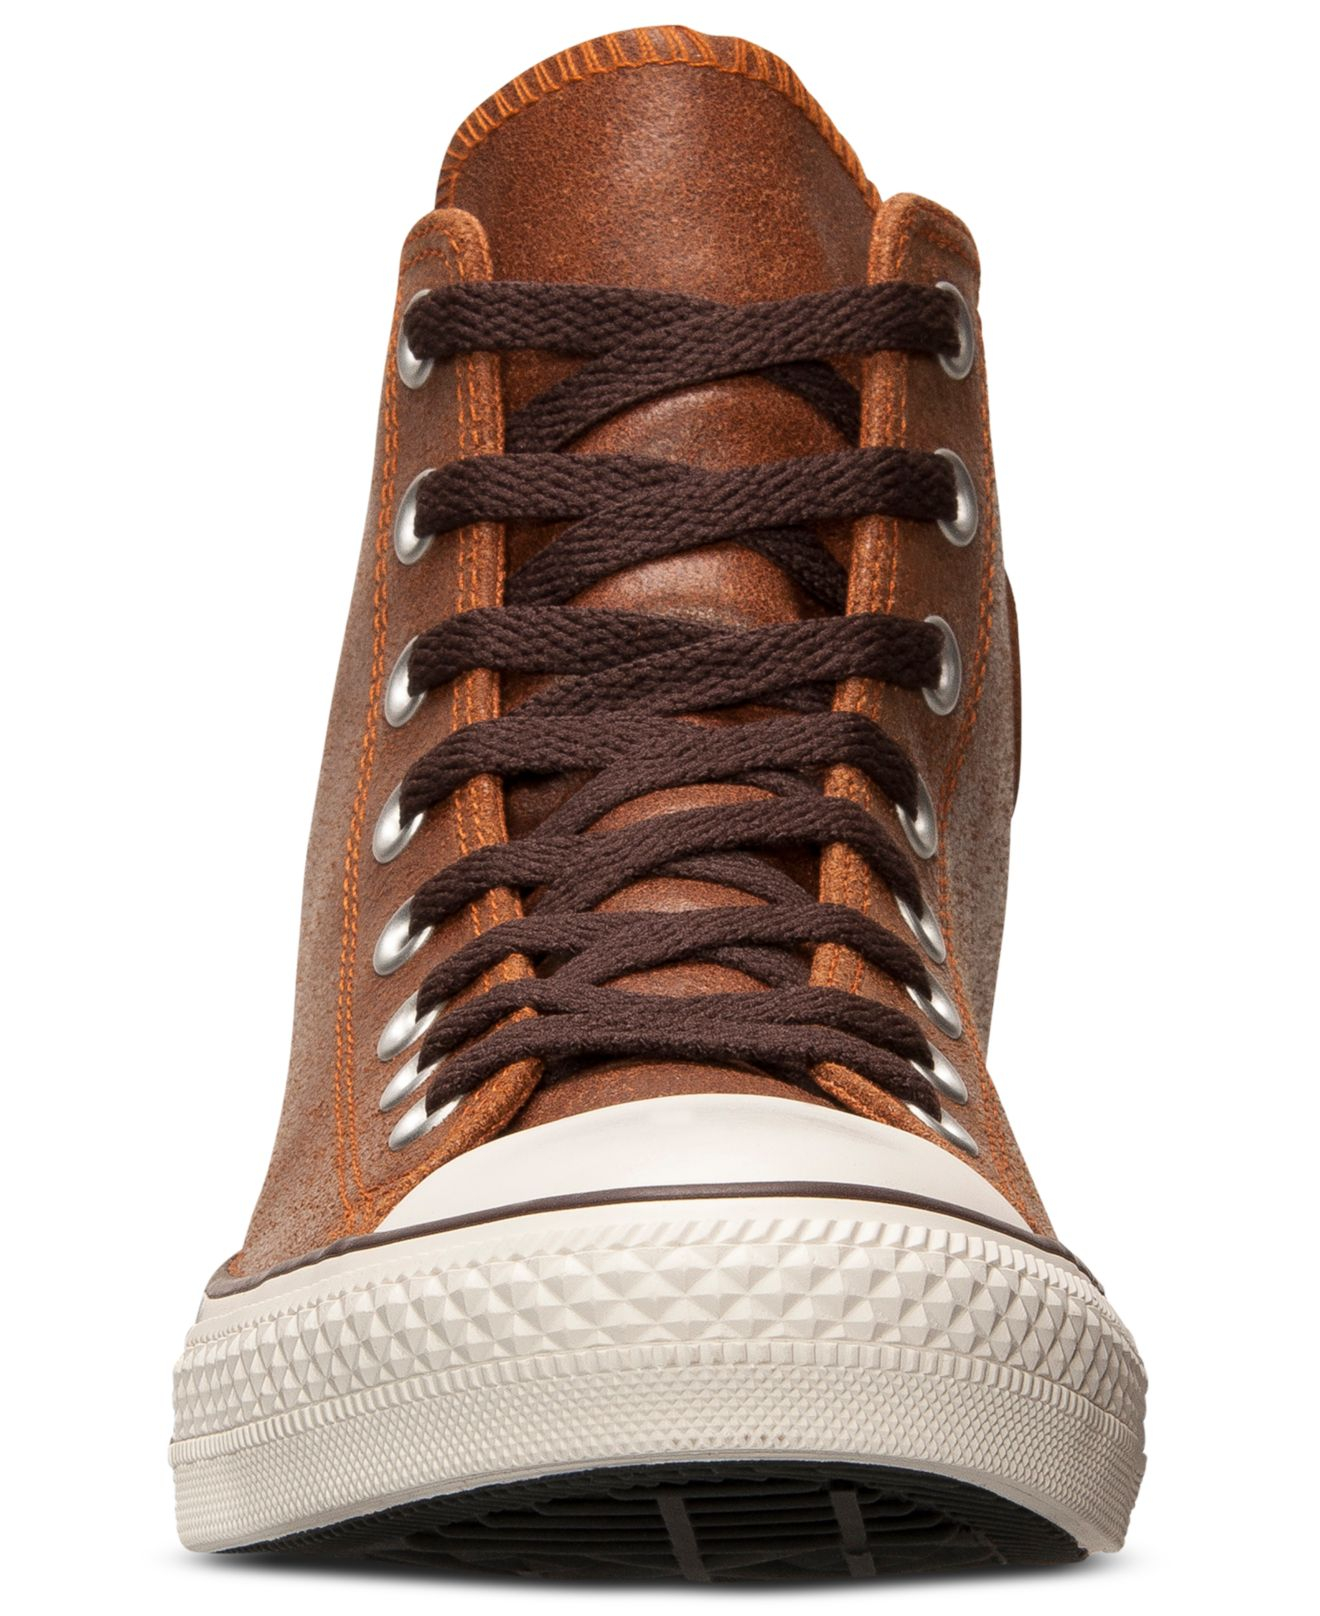 Converse Looking Work Shoes